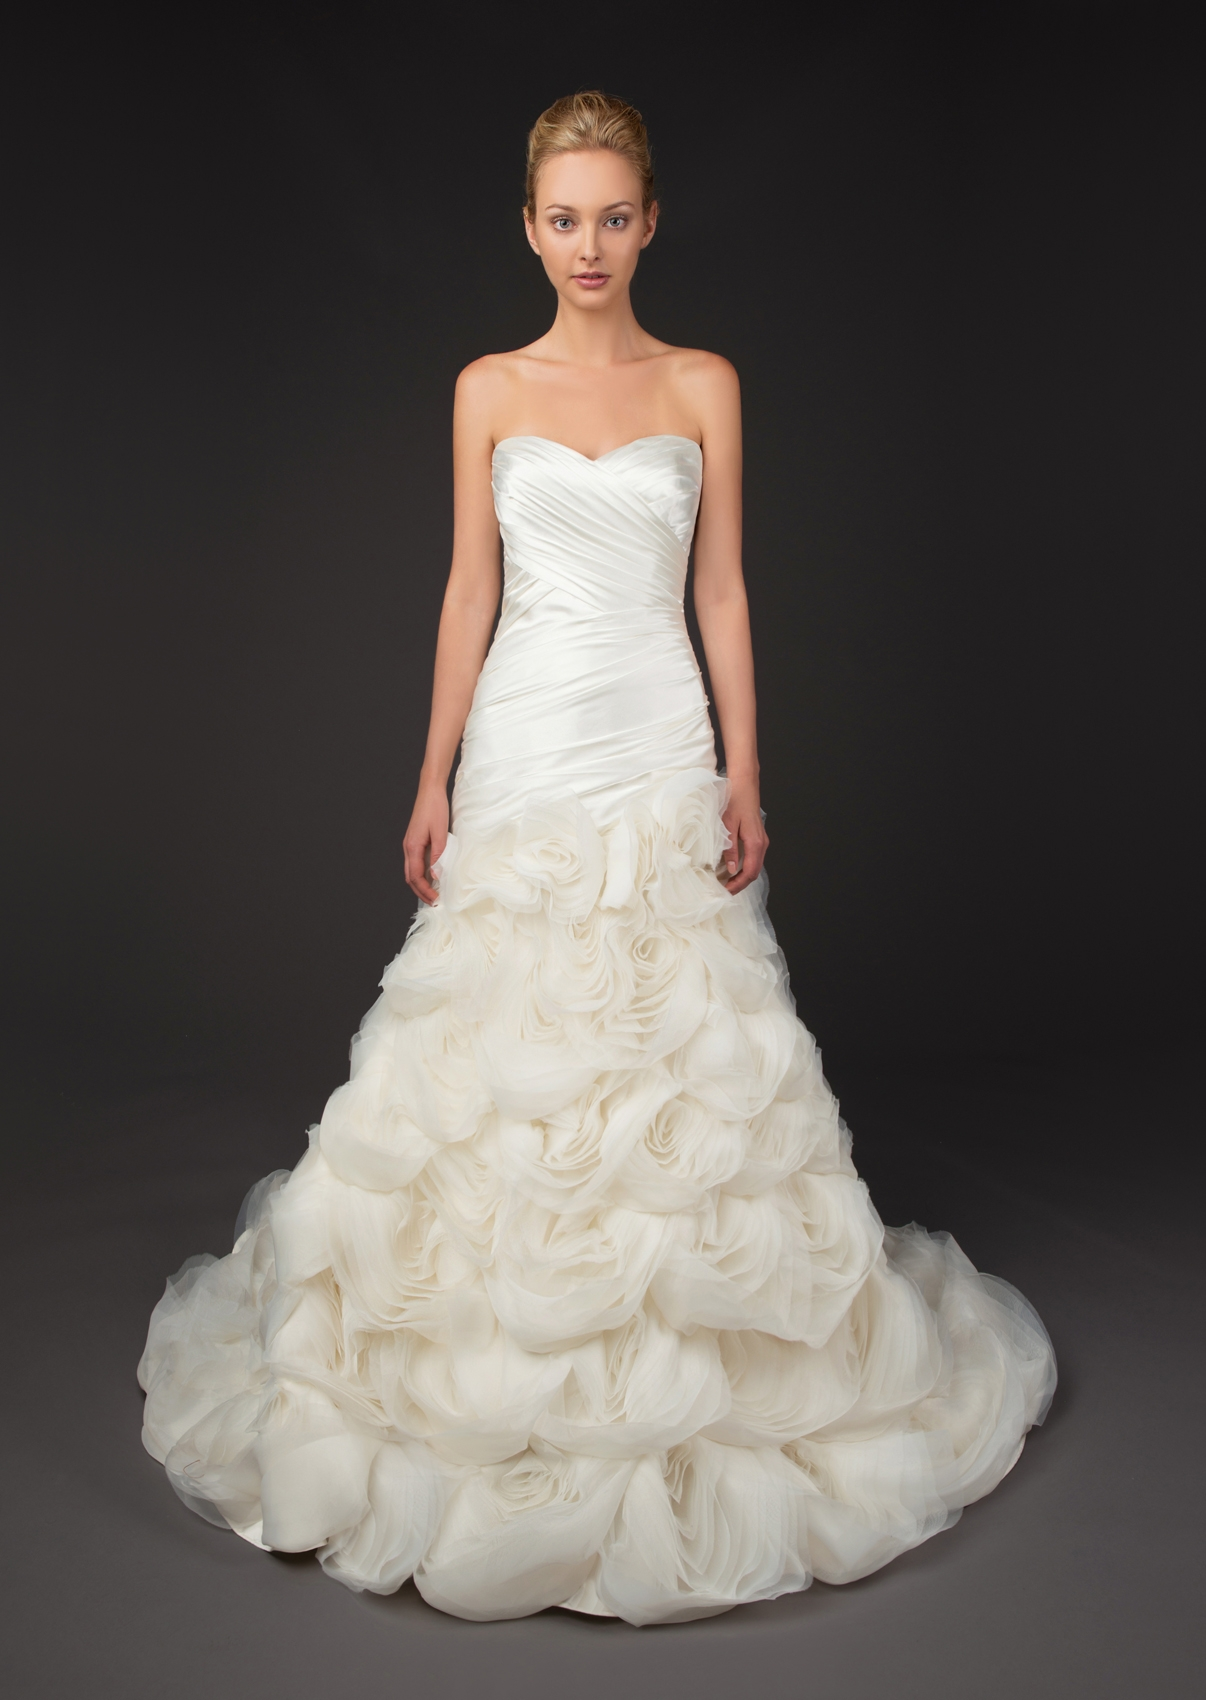 Coutre Wedding Gowns 020 - Coutre Wedding Gowns